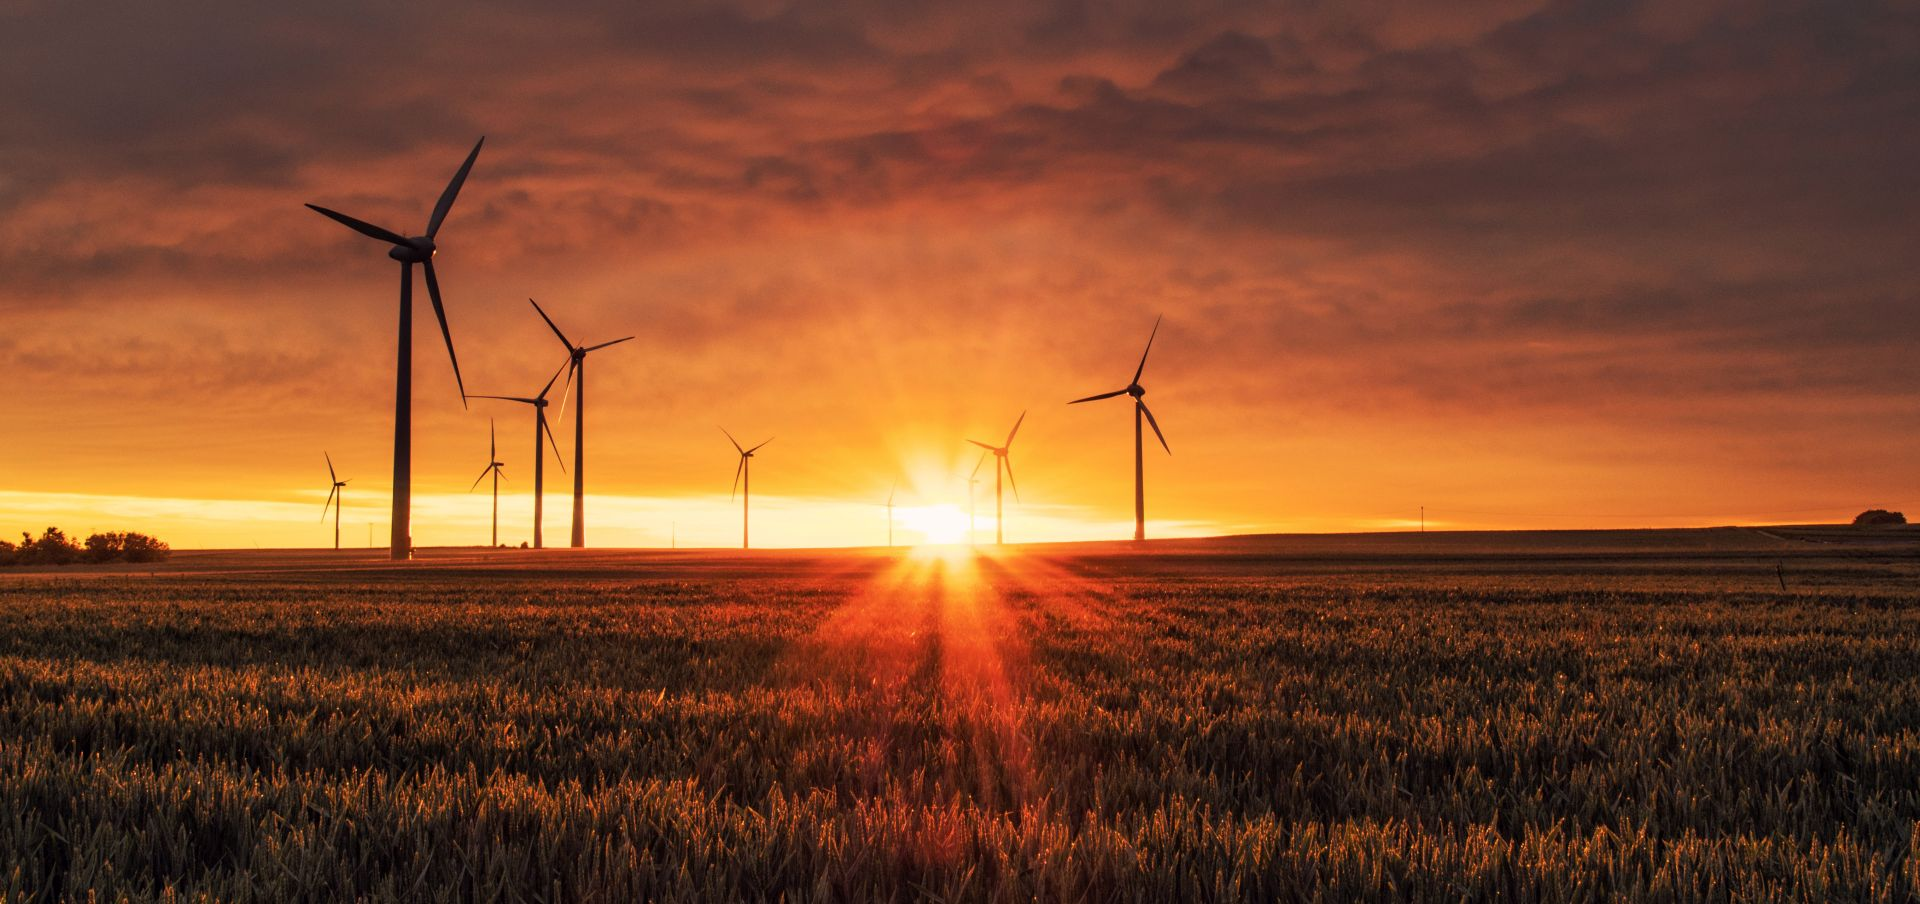 wind turbines in a field of wheat with sunset behind